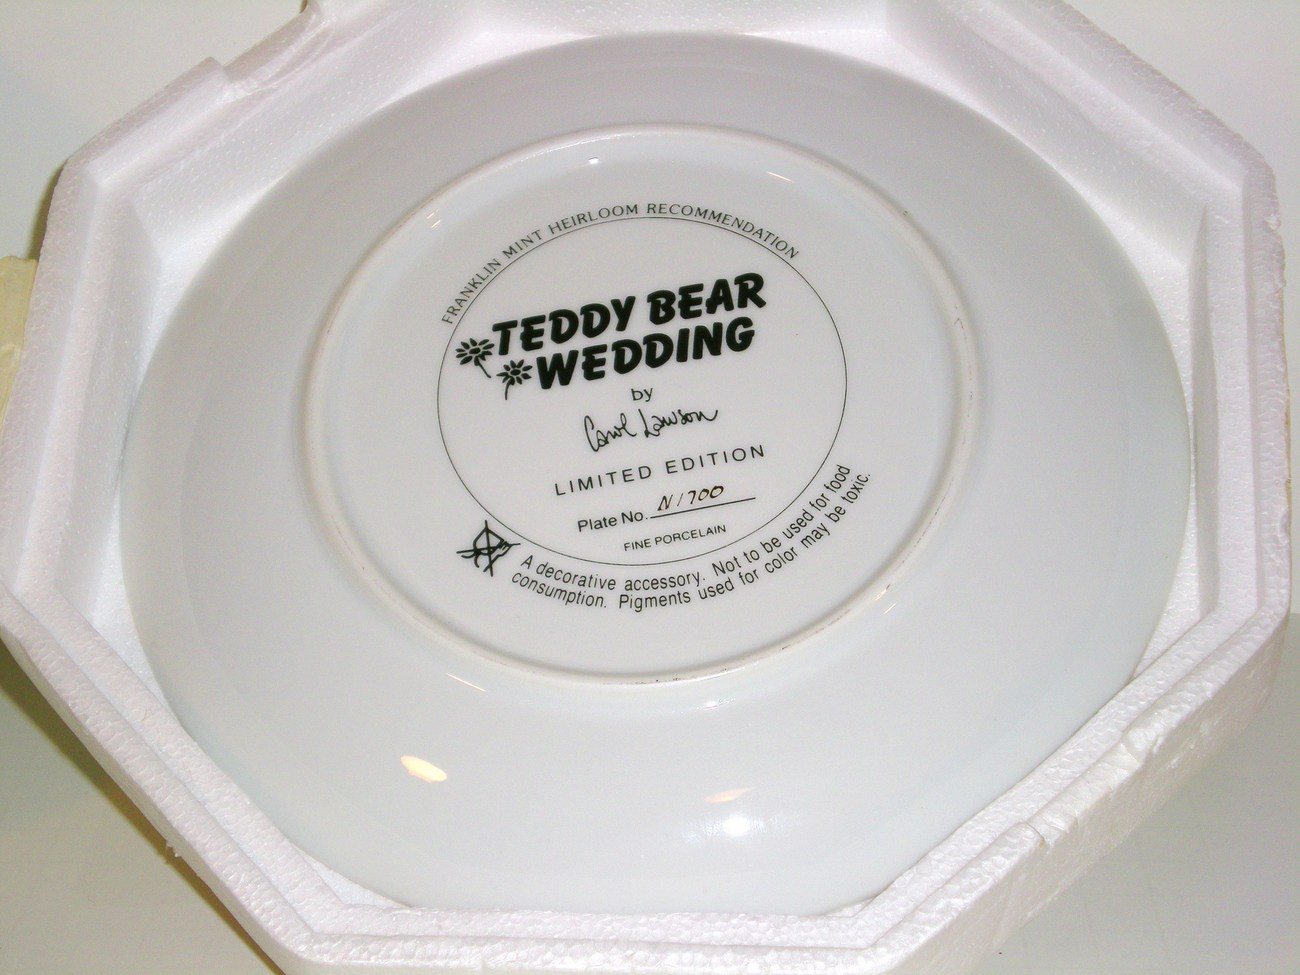 Image 1 of The Franklin Mint Teddy Bear Wedding Decorated Plate 1990